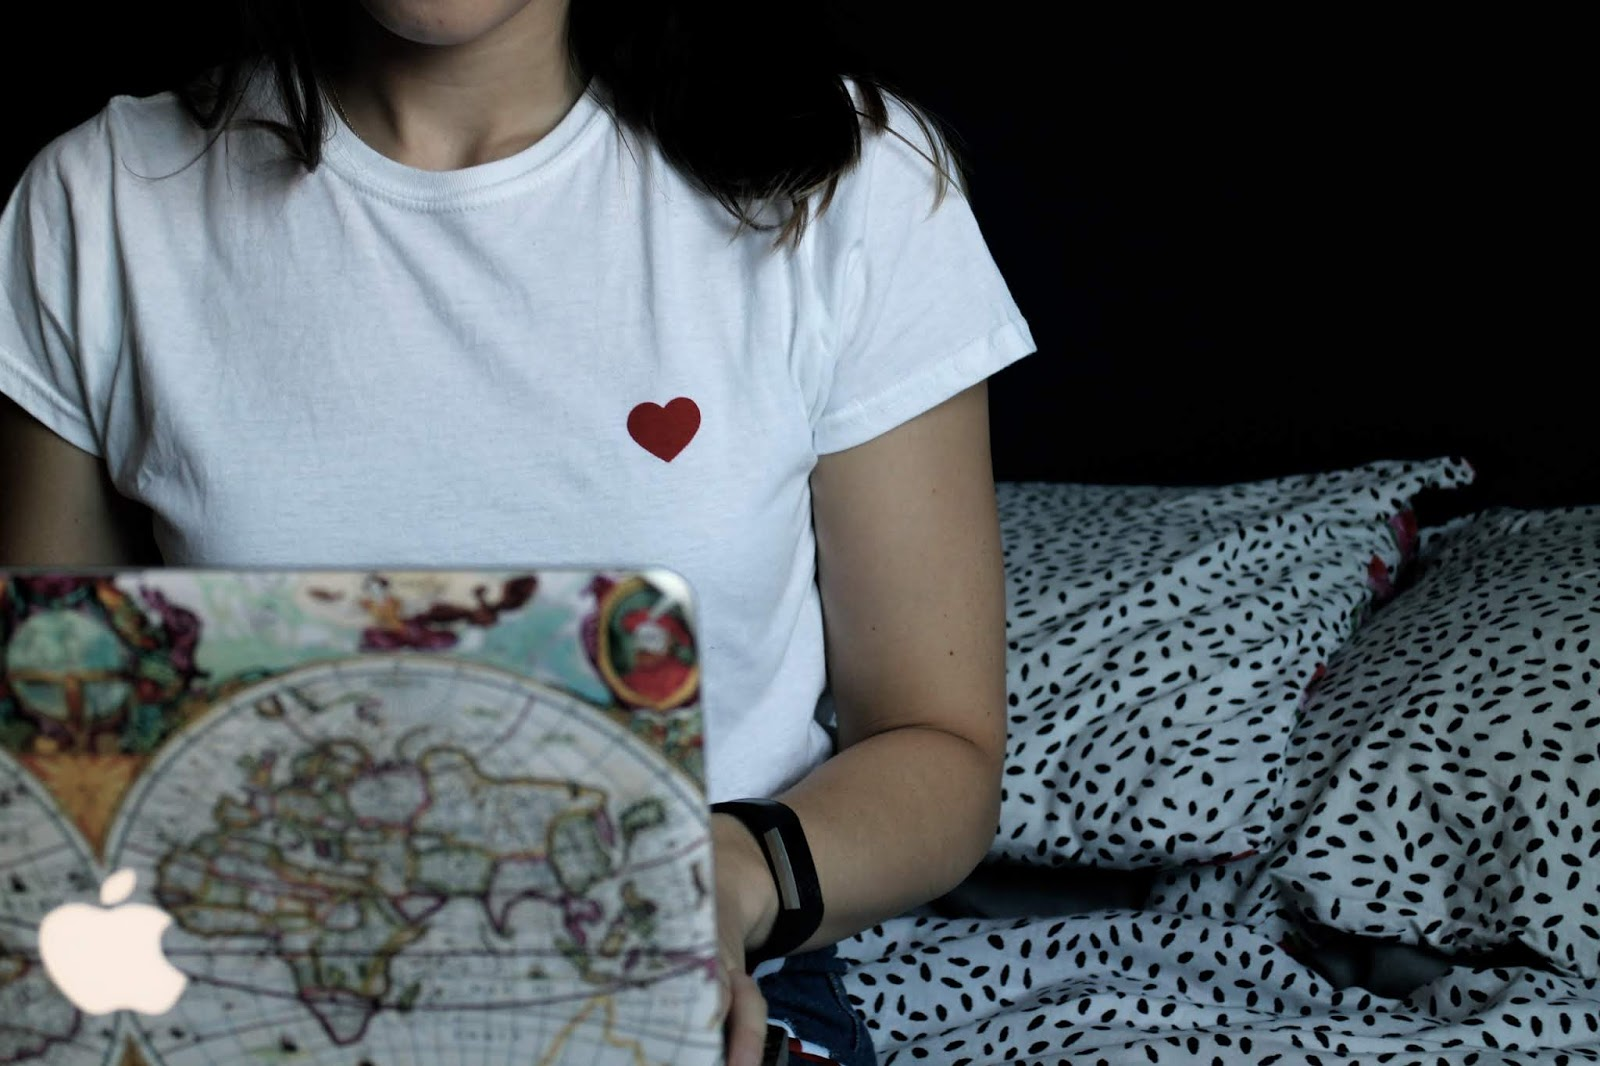 Close up of heart on a white t-shirt, girl holding a laptop